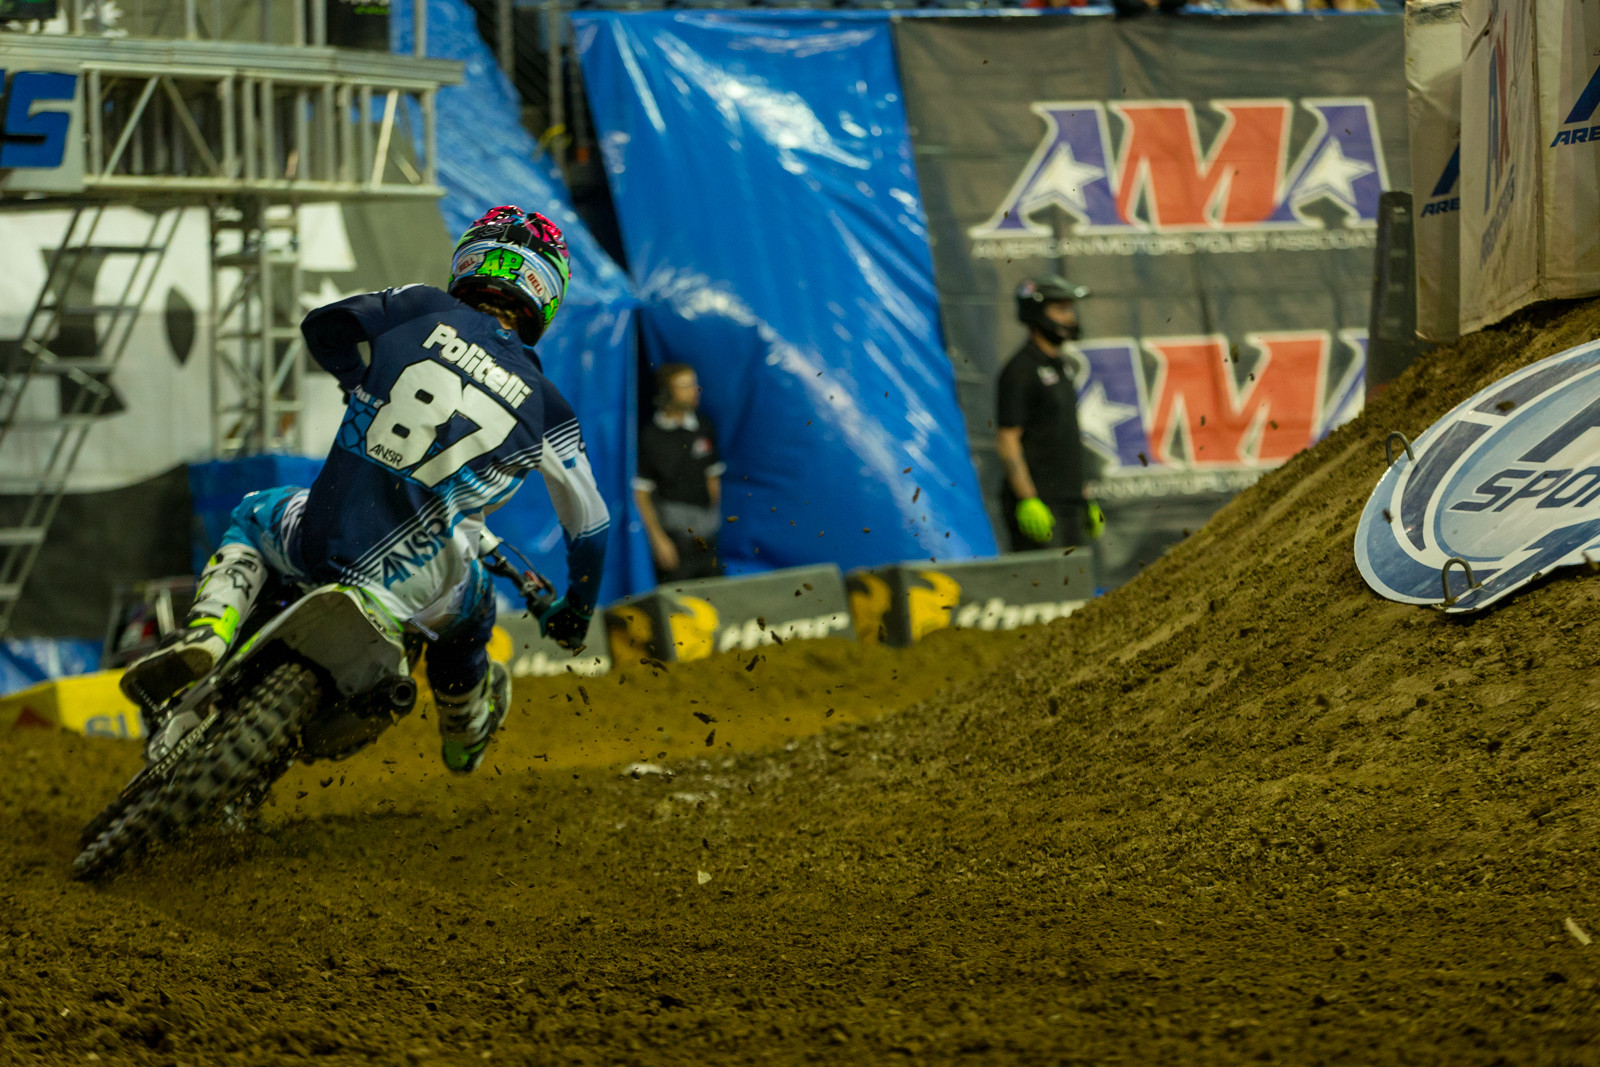 Austin Politelli - Photo Gallery: Ontario Arenacross - Saturday Night - Motocross Pictures - Vital MX